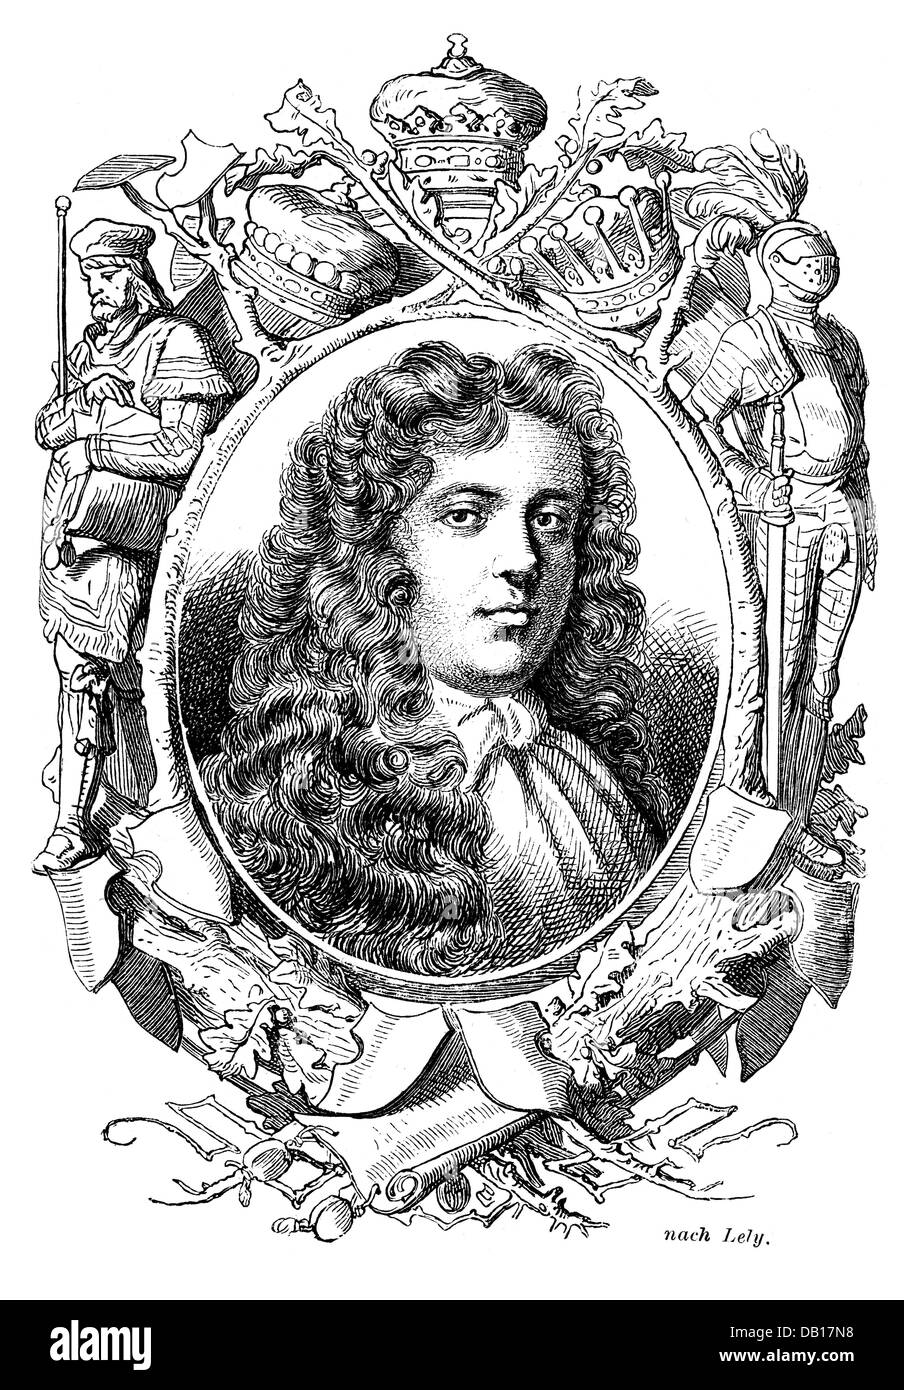 Scott, James, 1st Duke of Monmouth, 9.4.1649 - 5.7.1685, English general and politician, 19th century, Additional - Stock Image